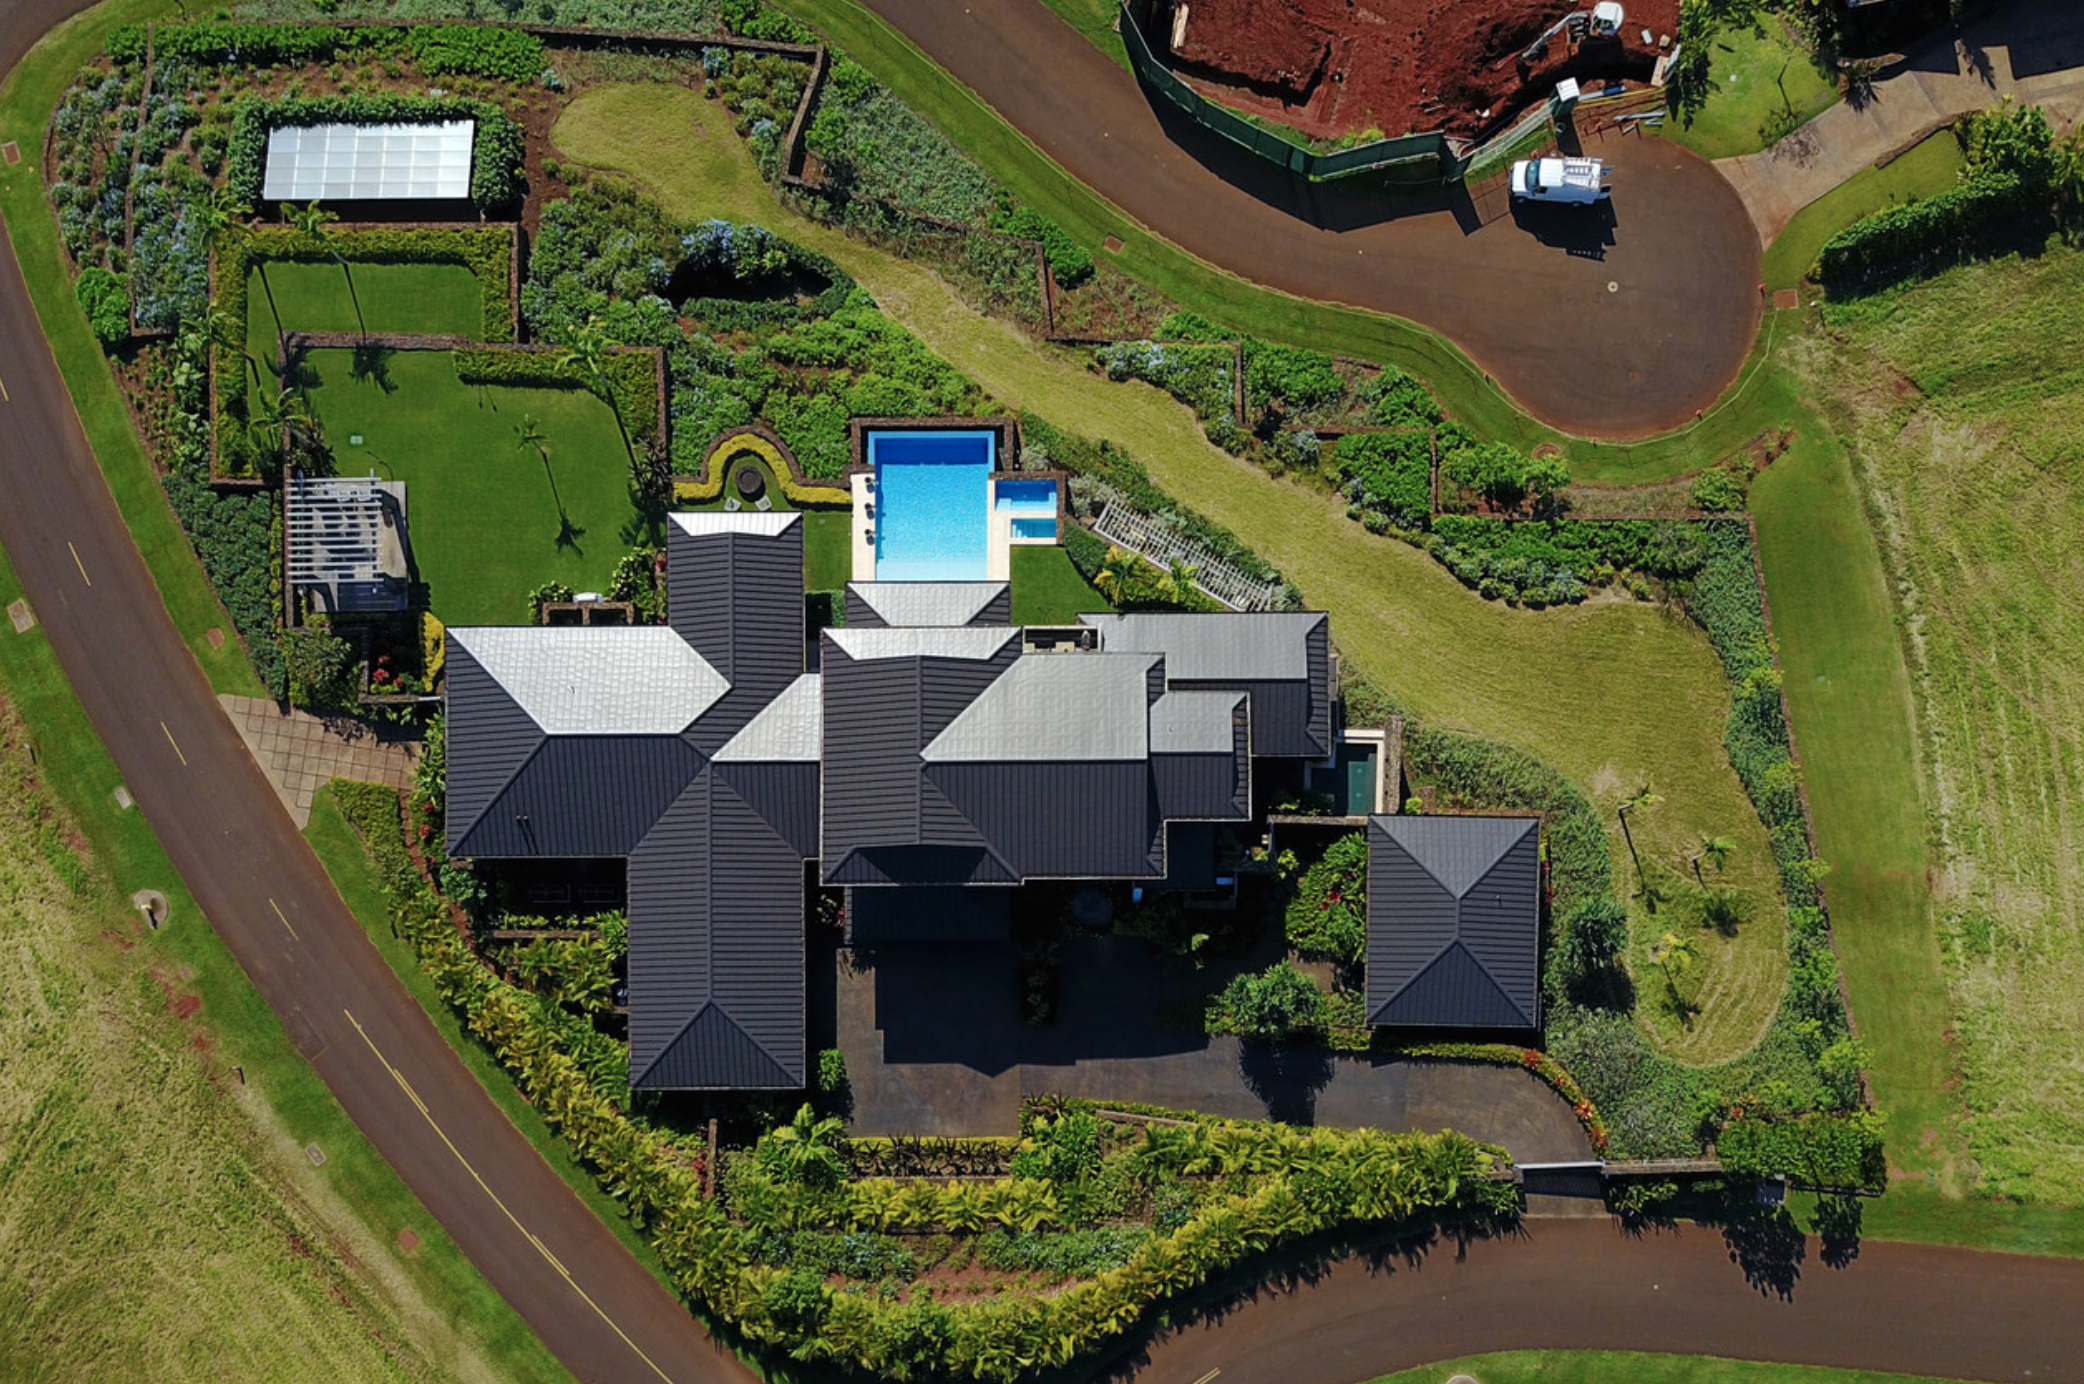 Wall Street Journal.  Over 250,000 Votes Later, Hawaii Villa Emerges as the House of the Year